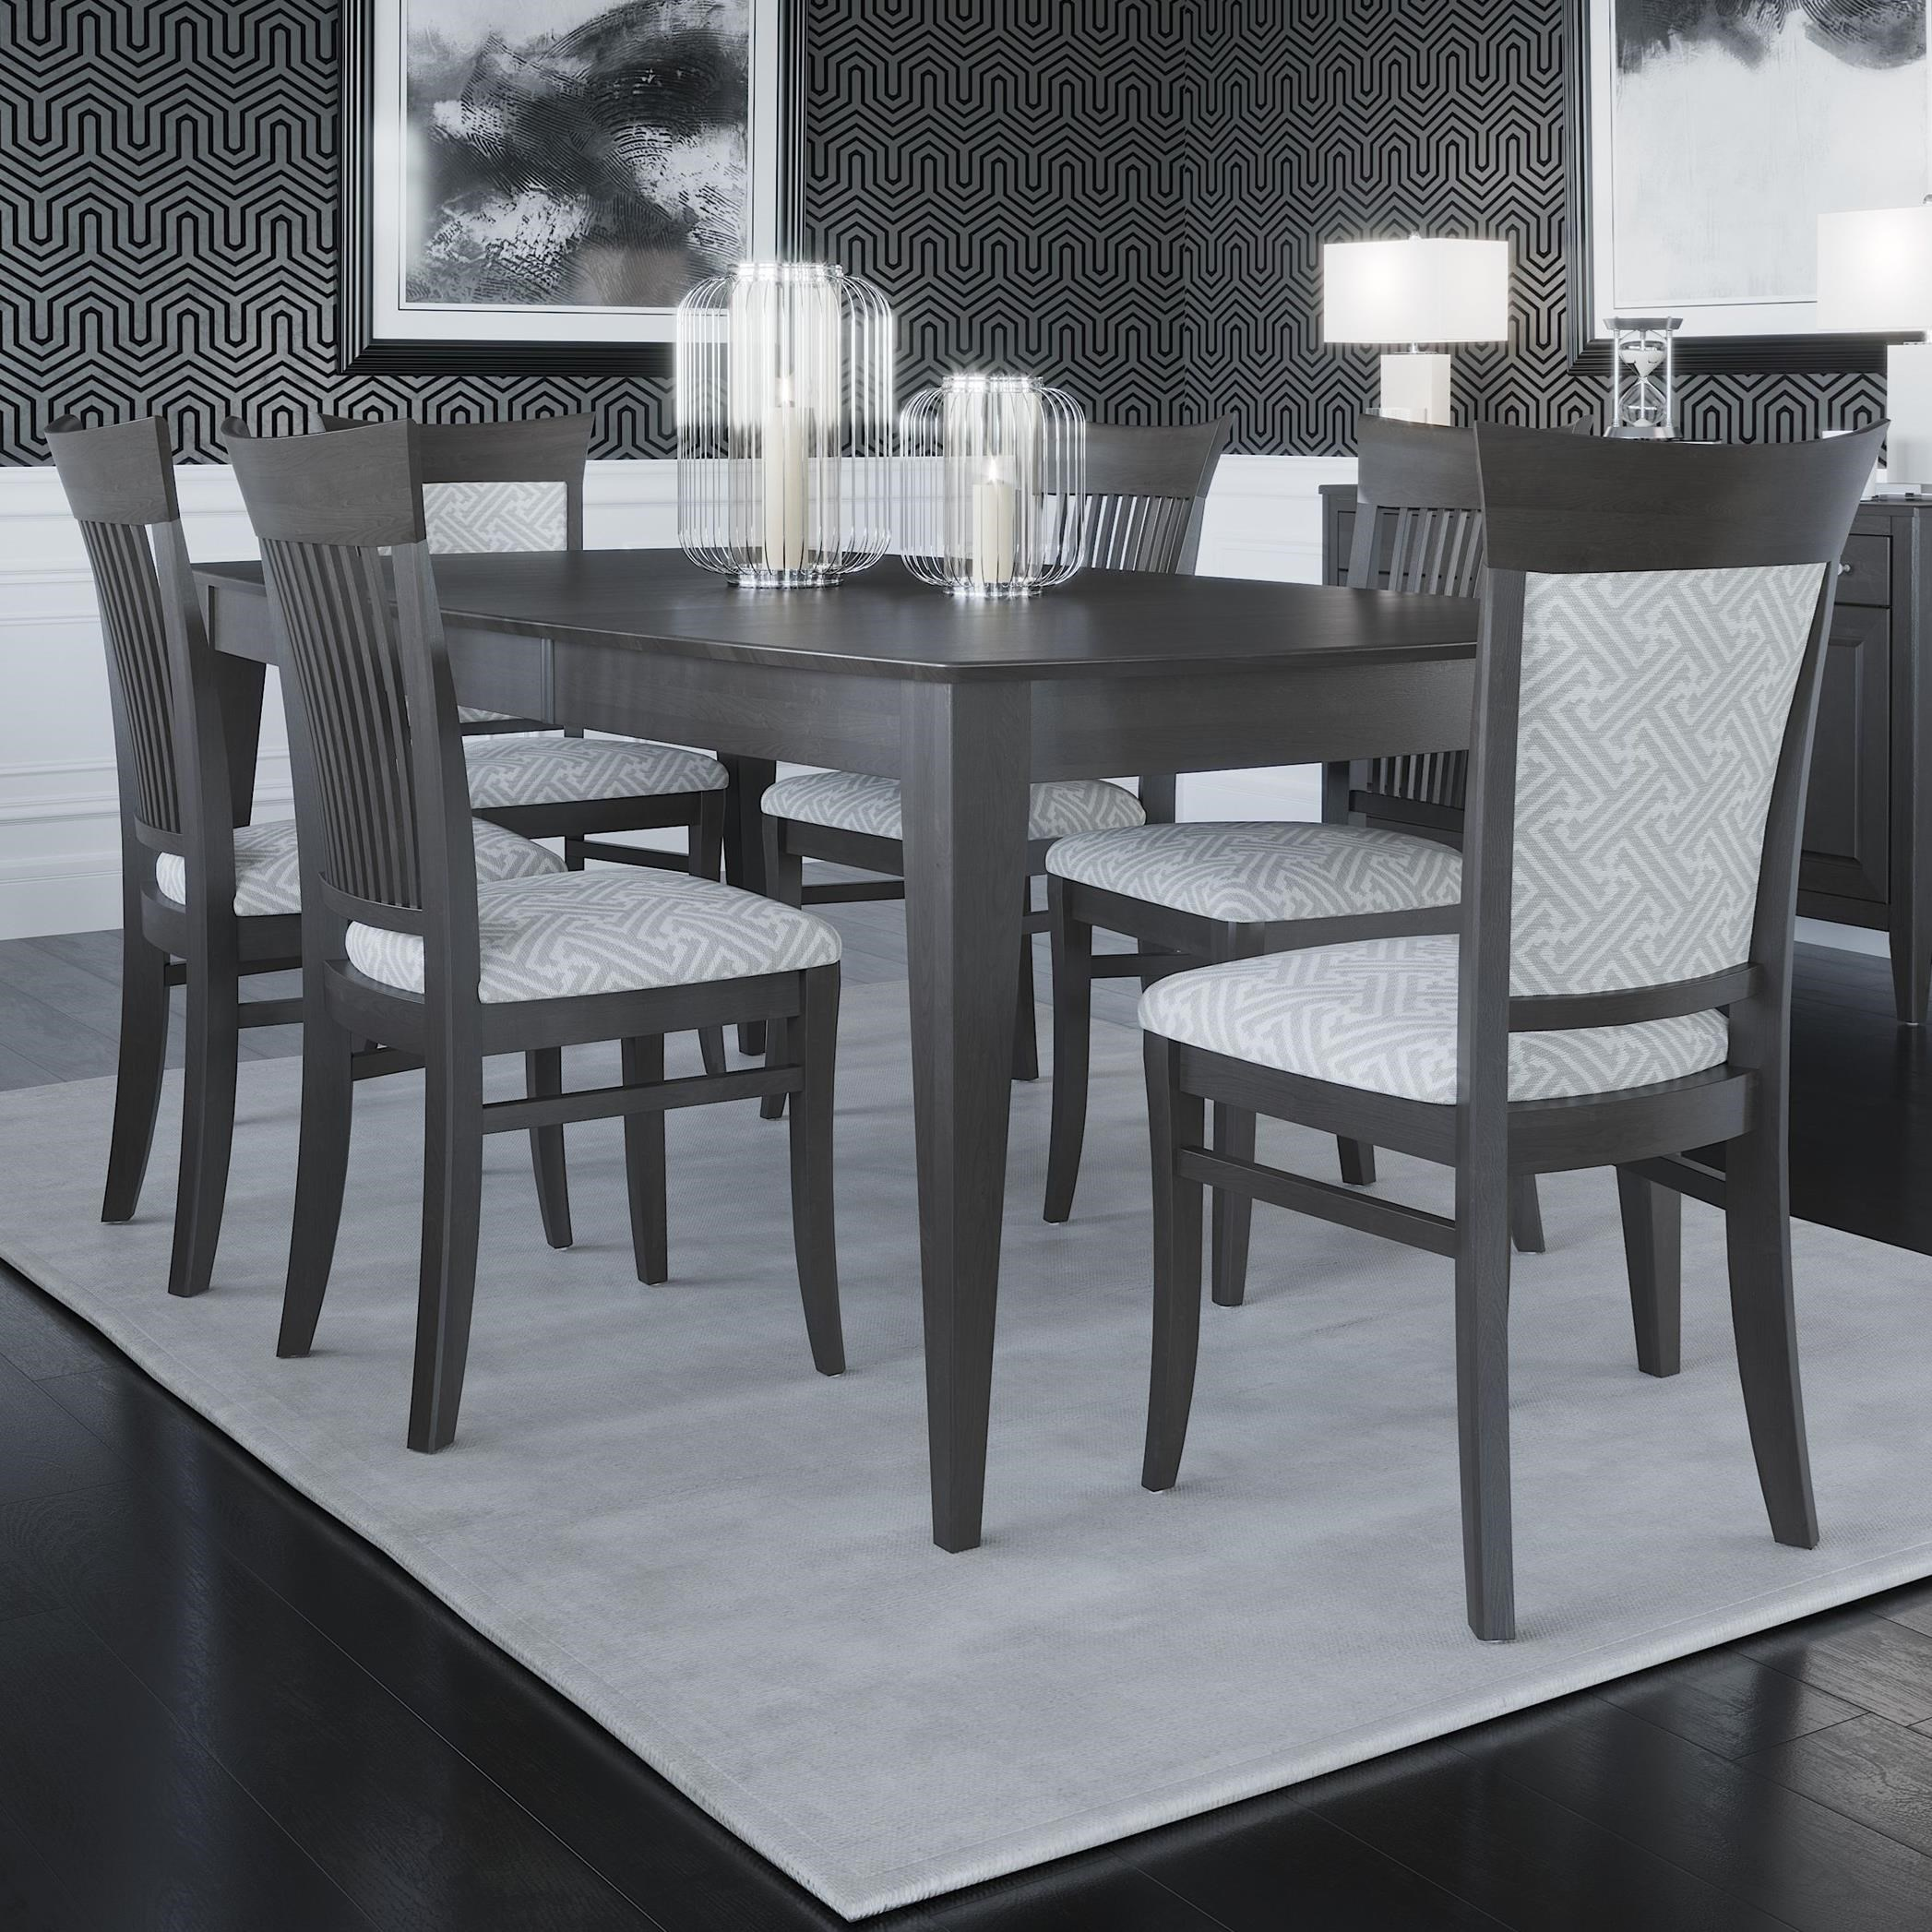 Customizable Boat Shape Dining Table Set